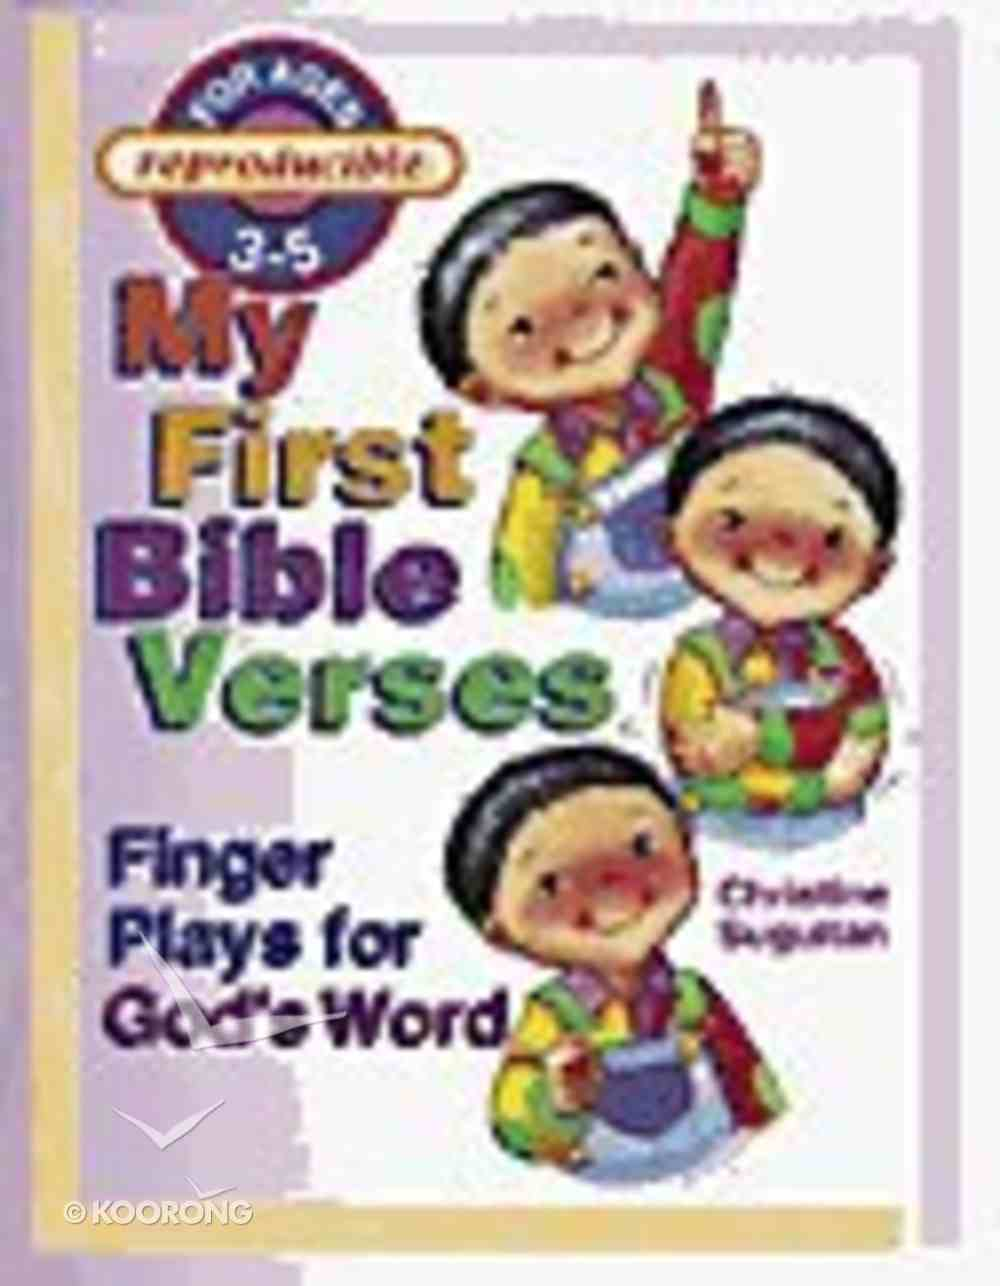 My First Bible Verses Paperback